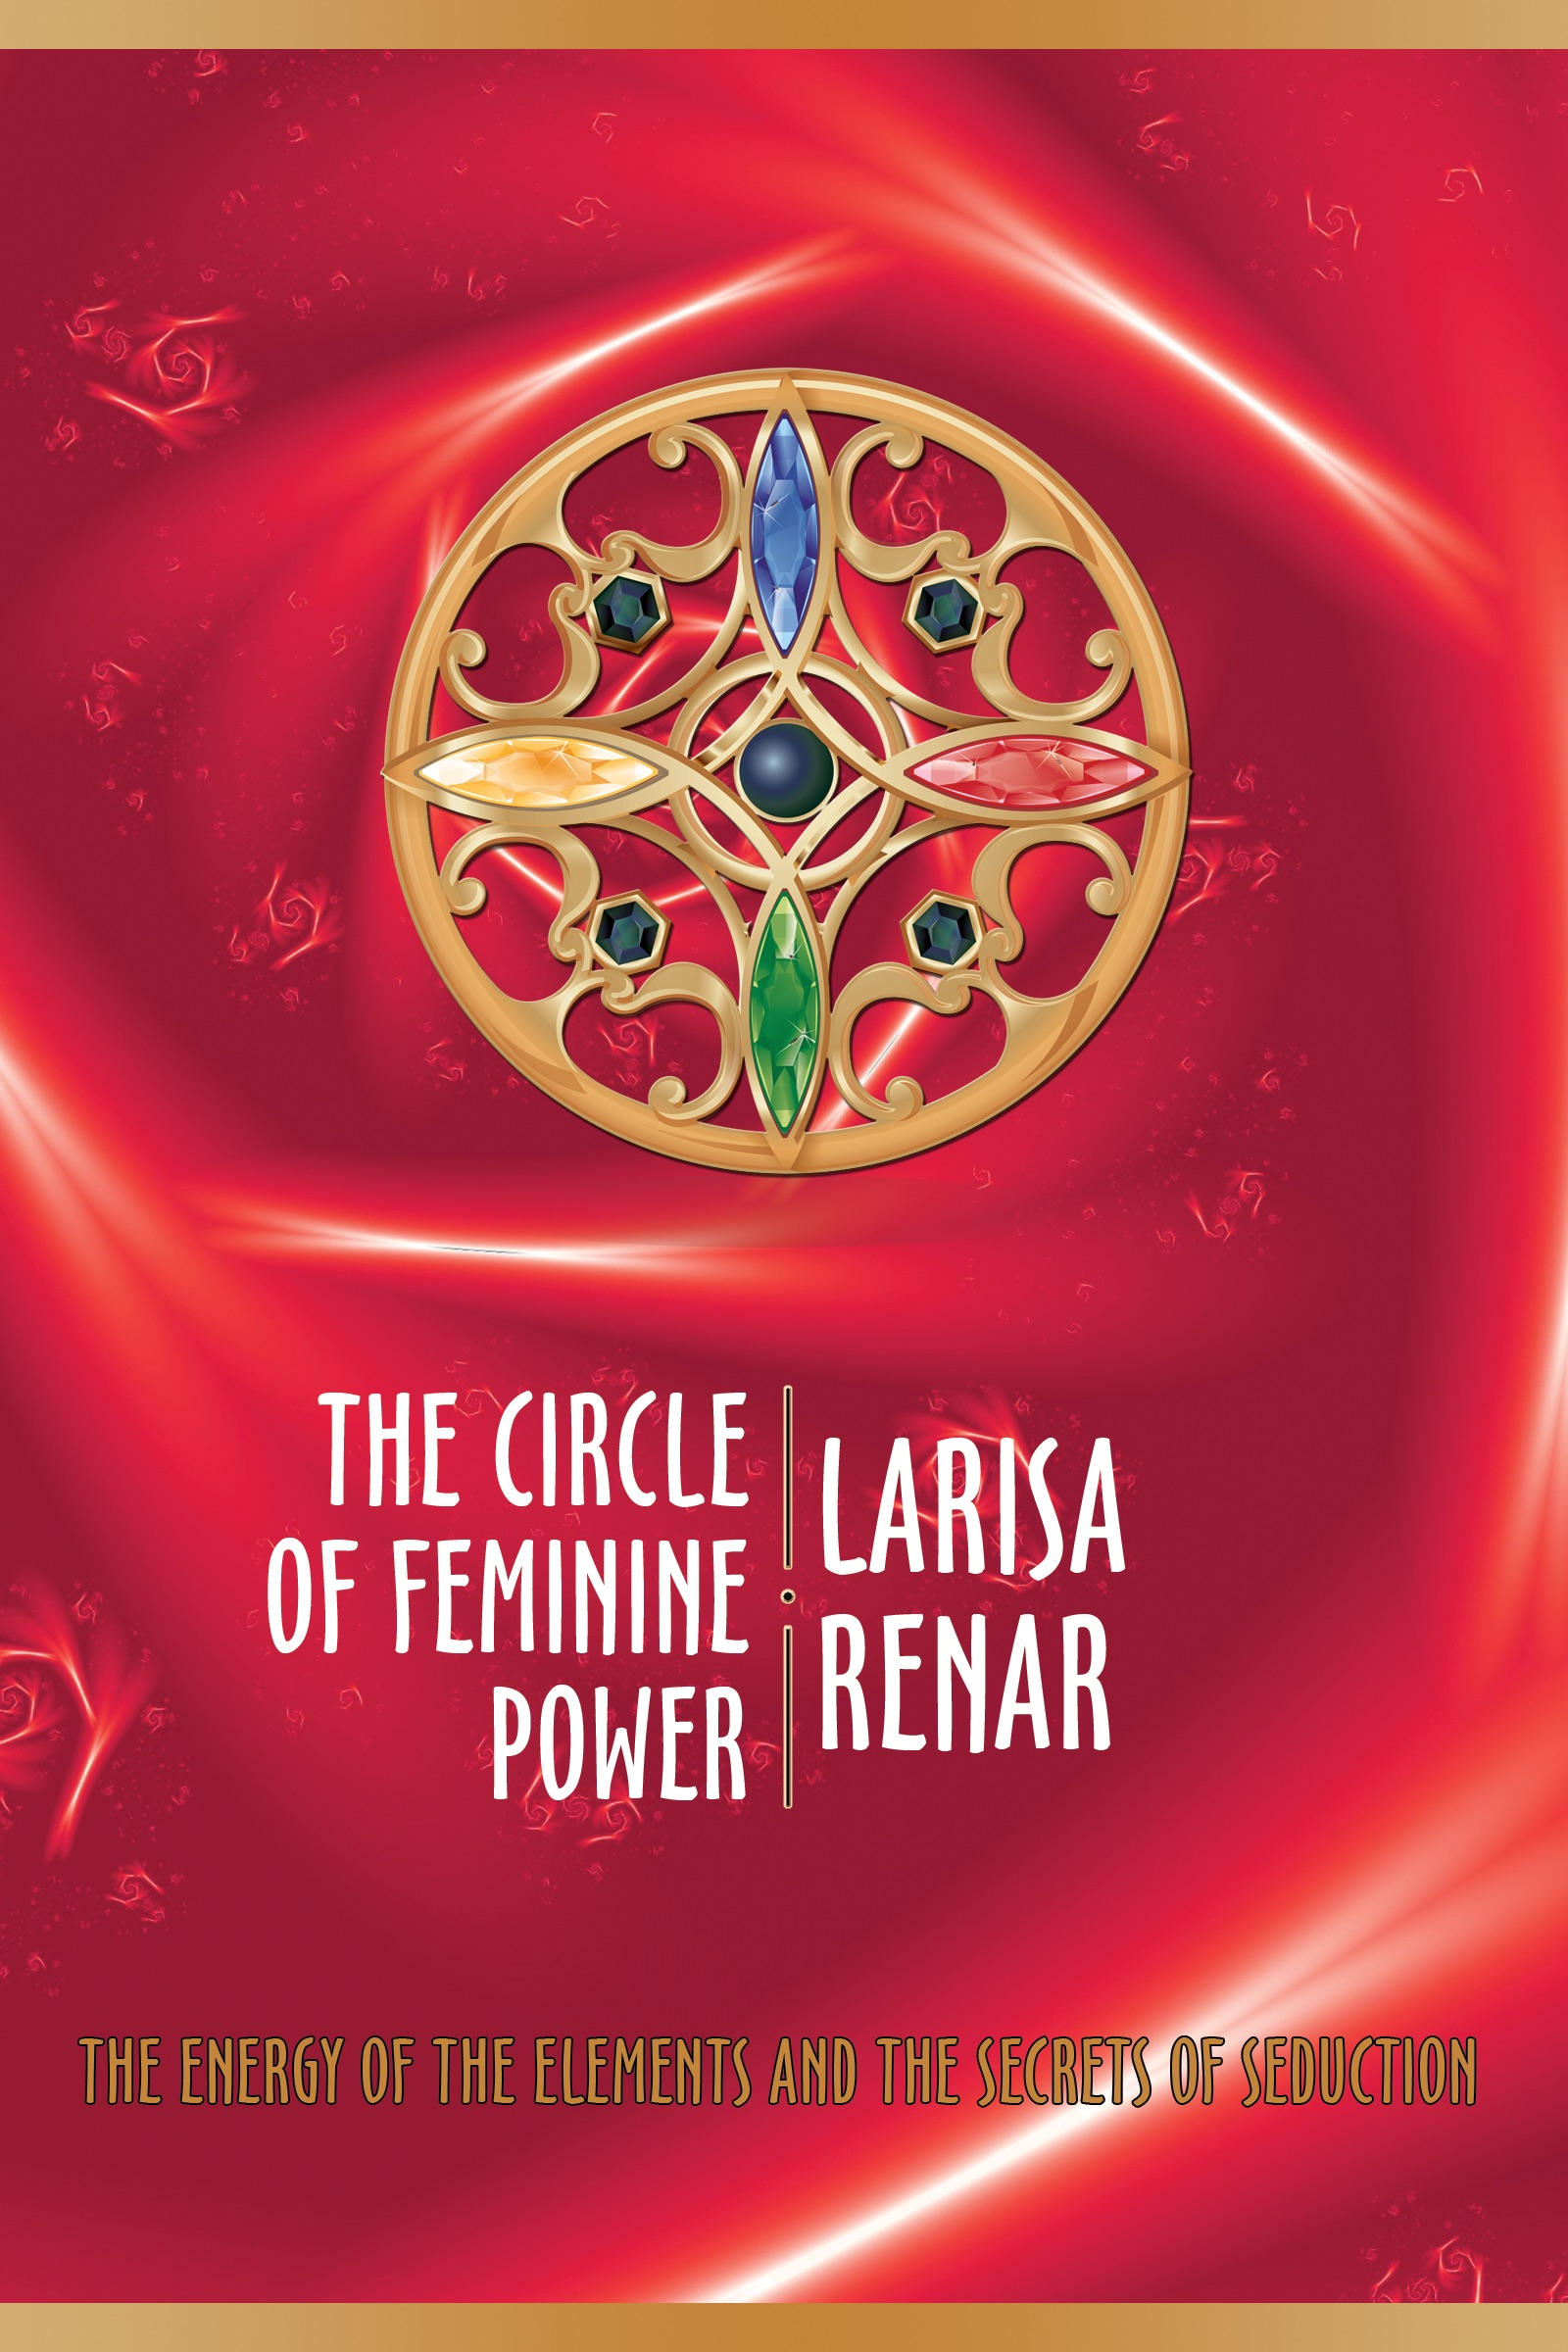 The circle of feminine power: the energy of the elements and the secrets of  seduction, an Ebook by Larisa Renar